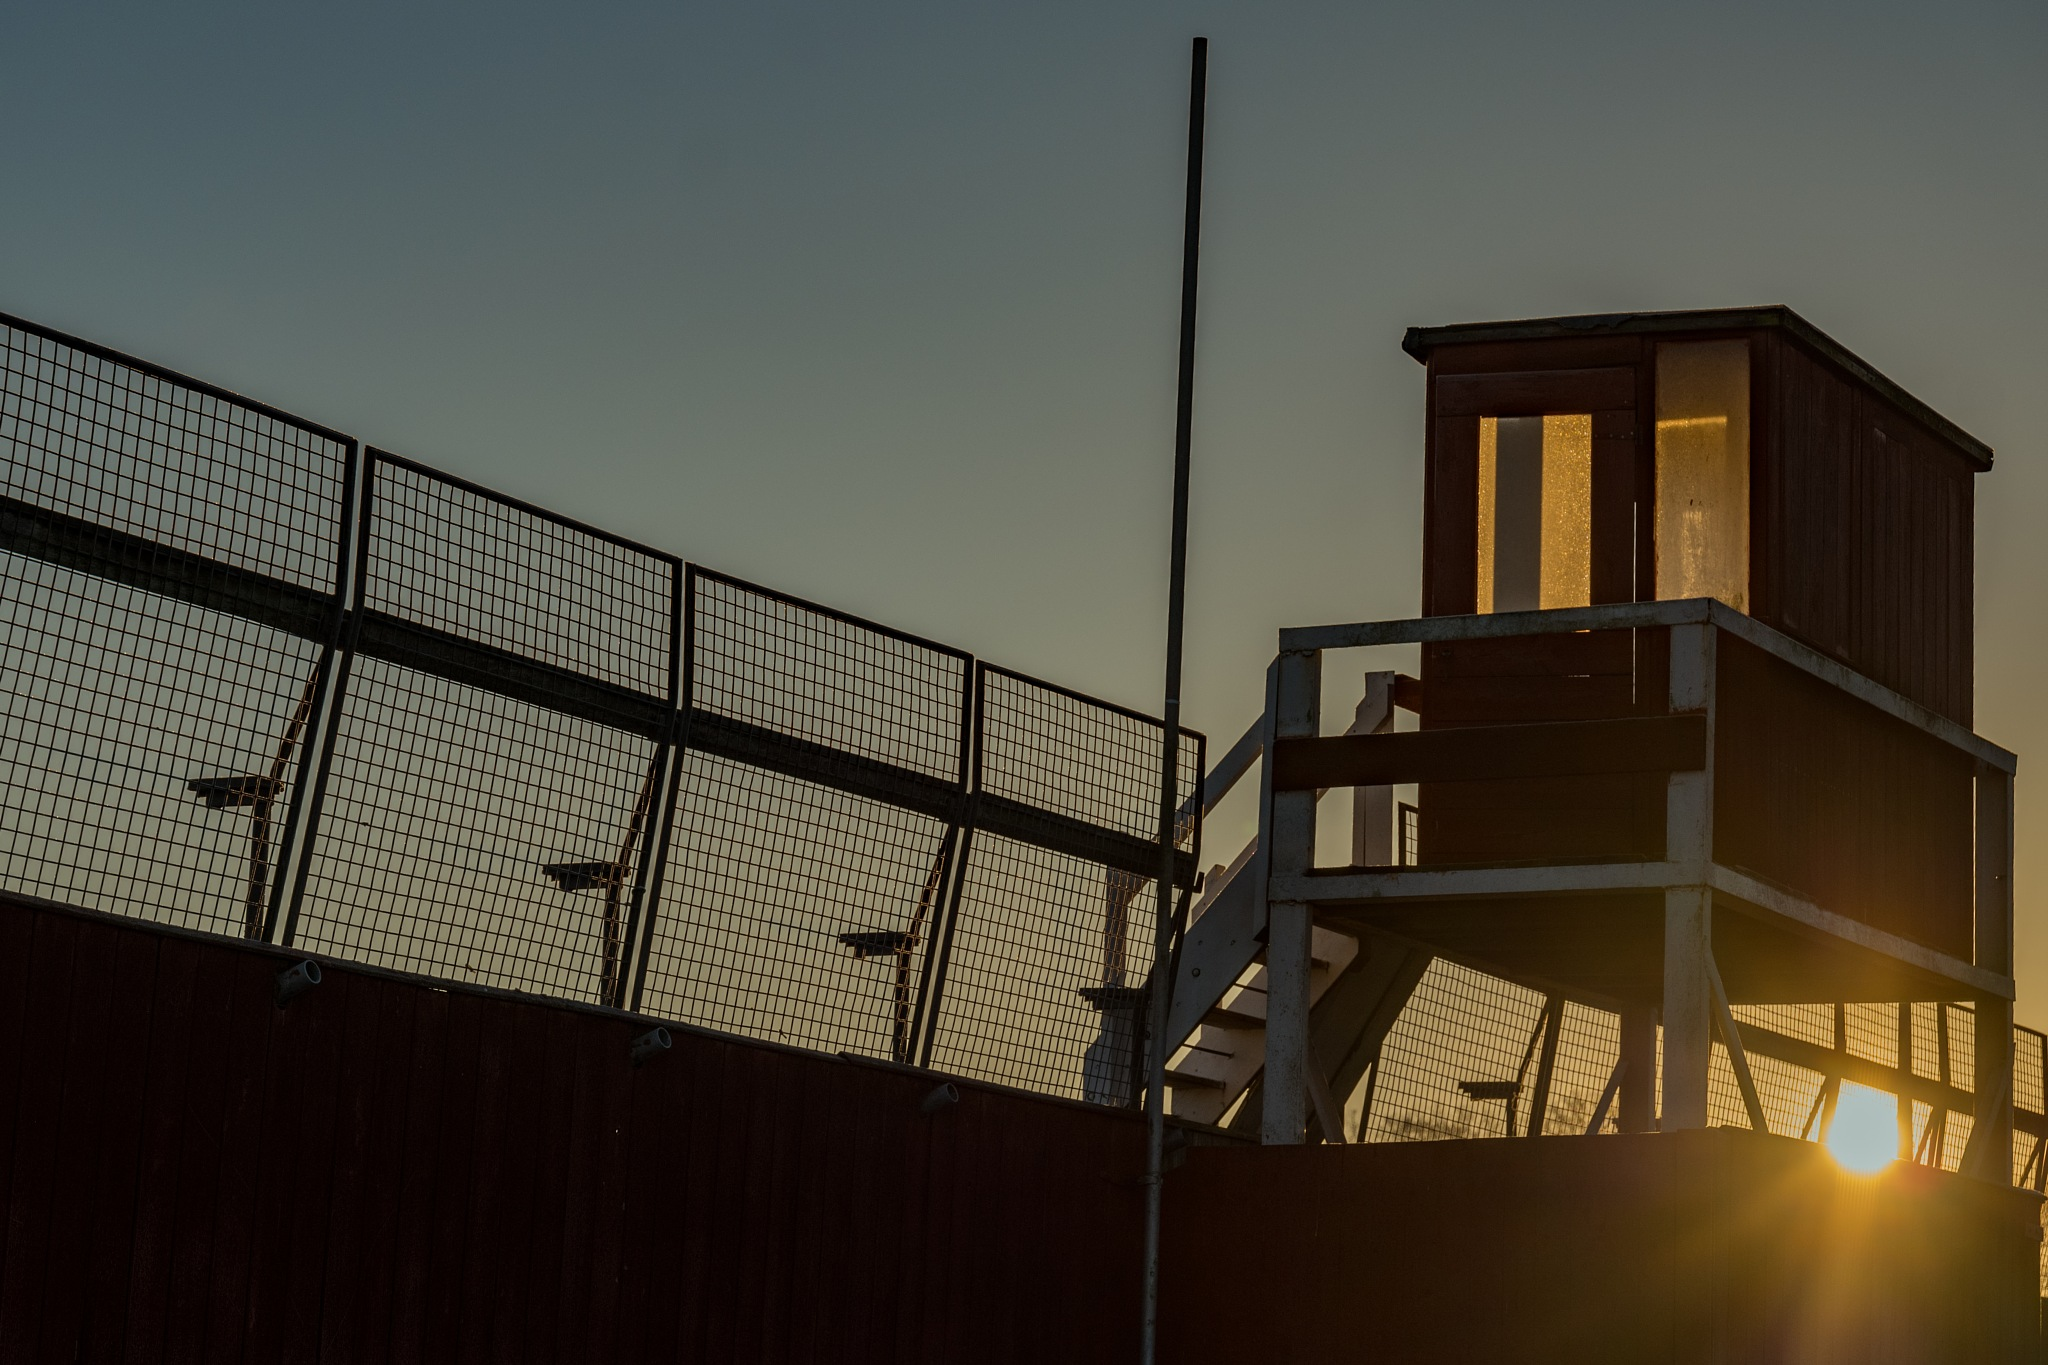 Winter sun Rising over Grandstand by mike hughes